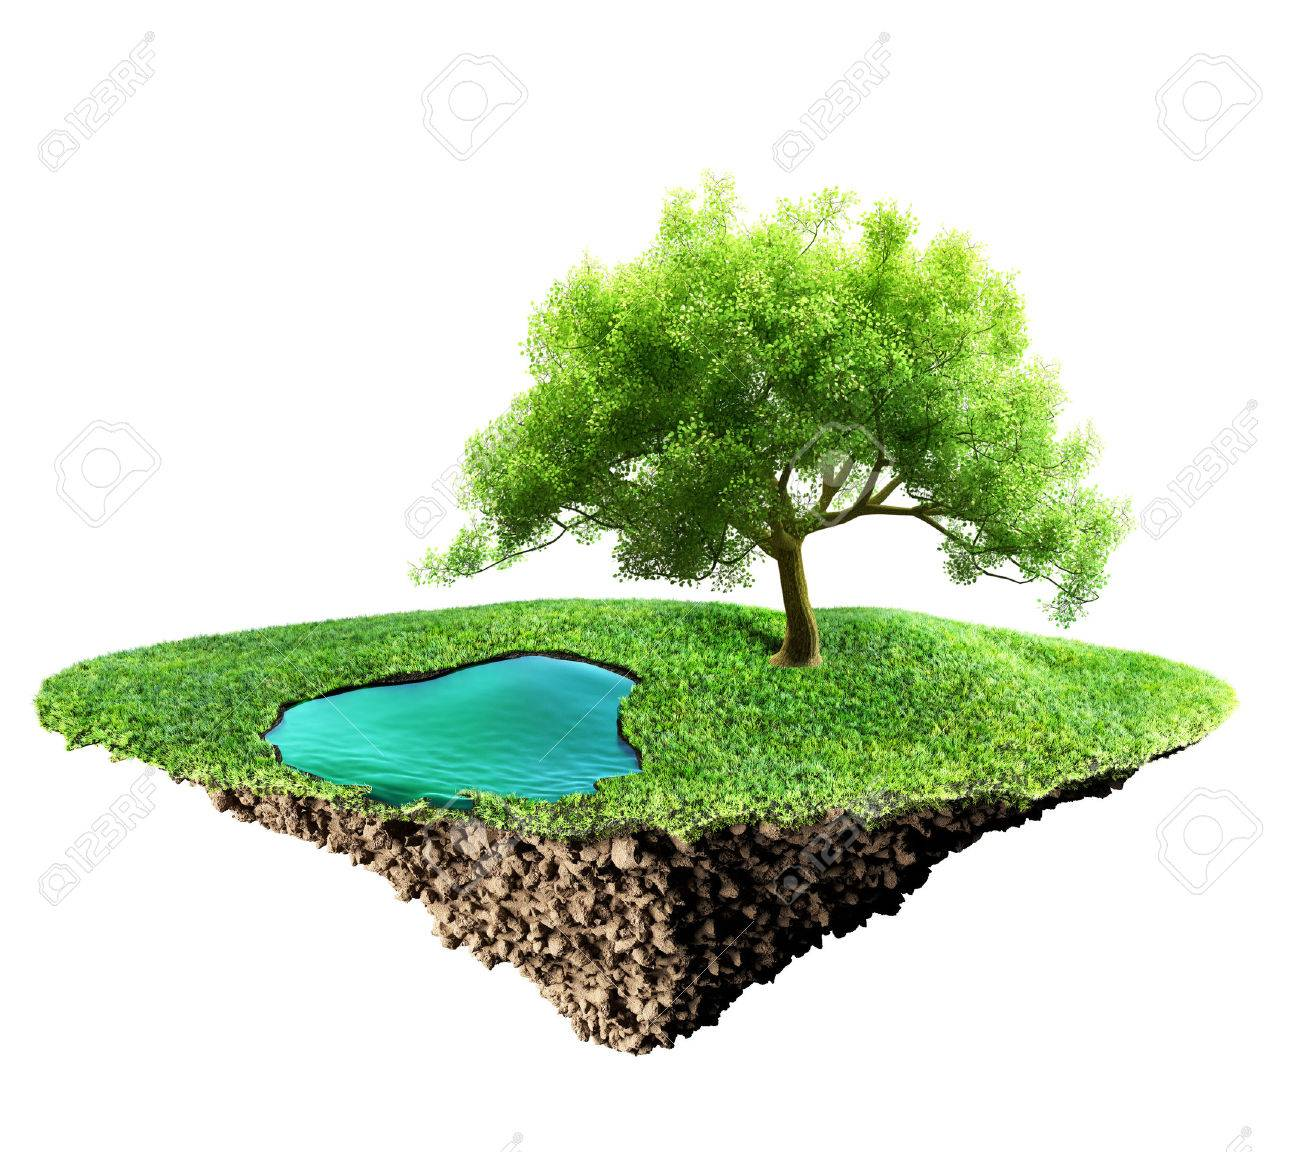 grass island and soil - 35362446